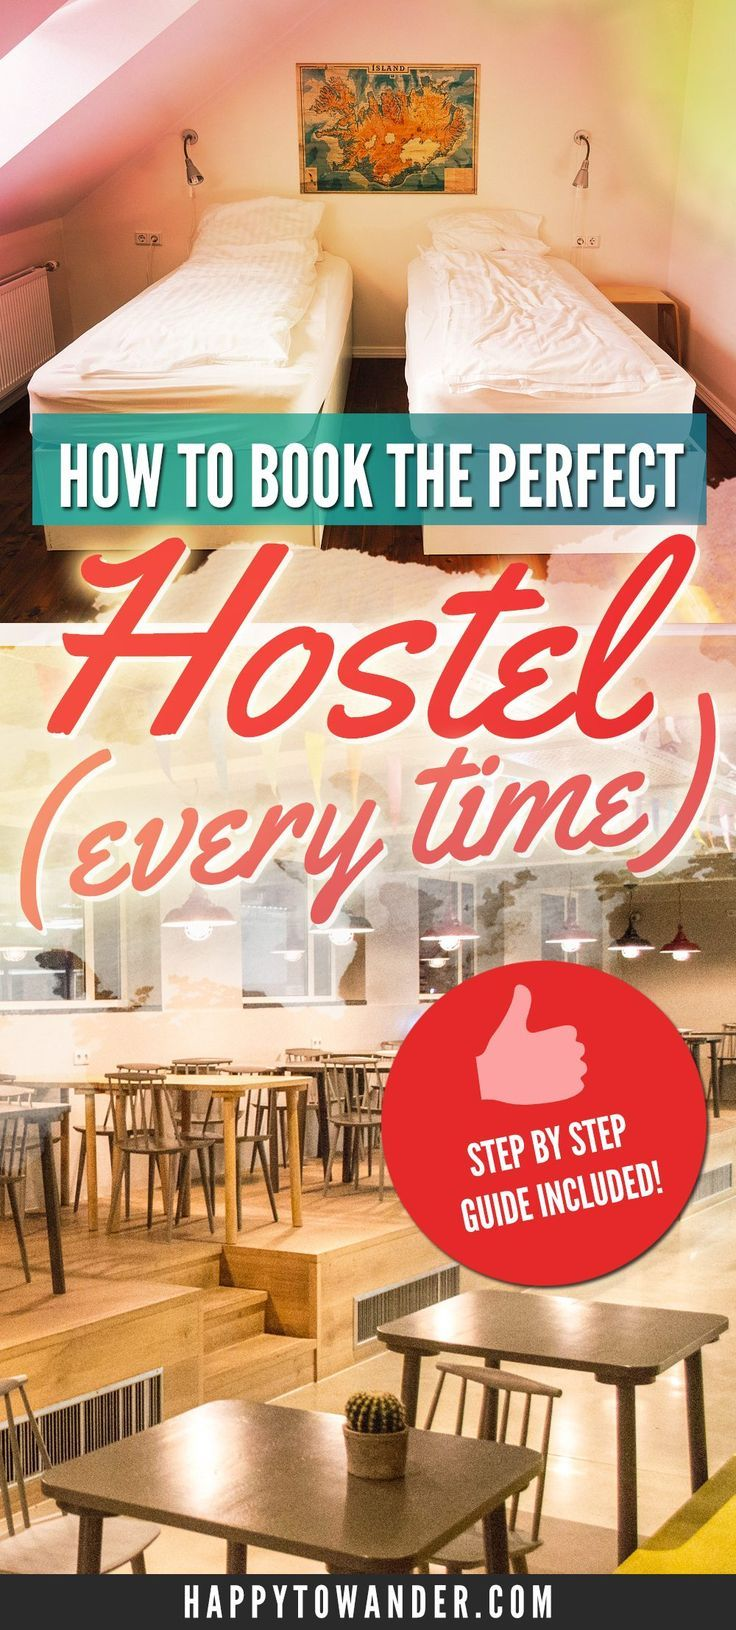 Awesome, in-depth guide to booking the perfect hostel every time! This post details everything you need to know before you book a hostel, to ensure that you have the best possible experience. A must-pin for anyone who is new to hostel life!